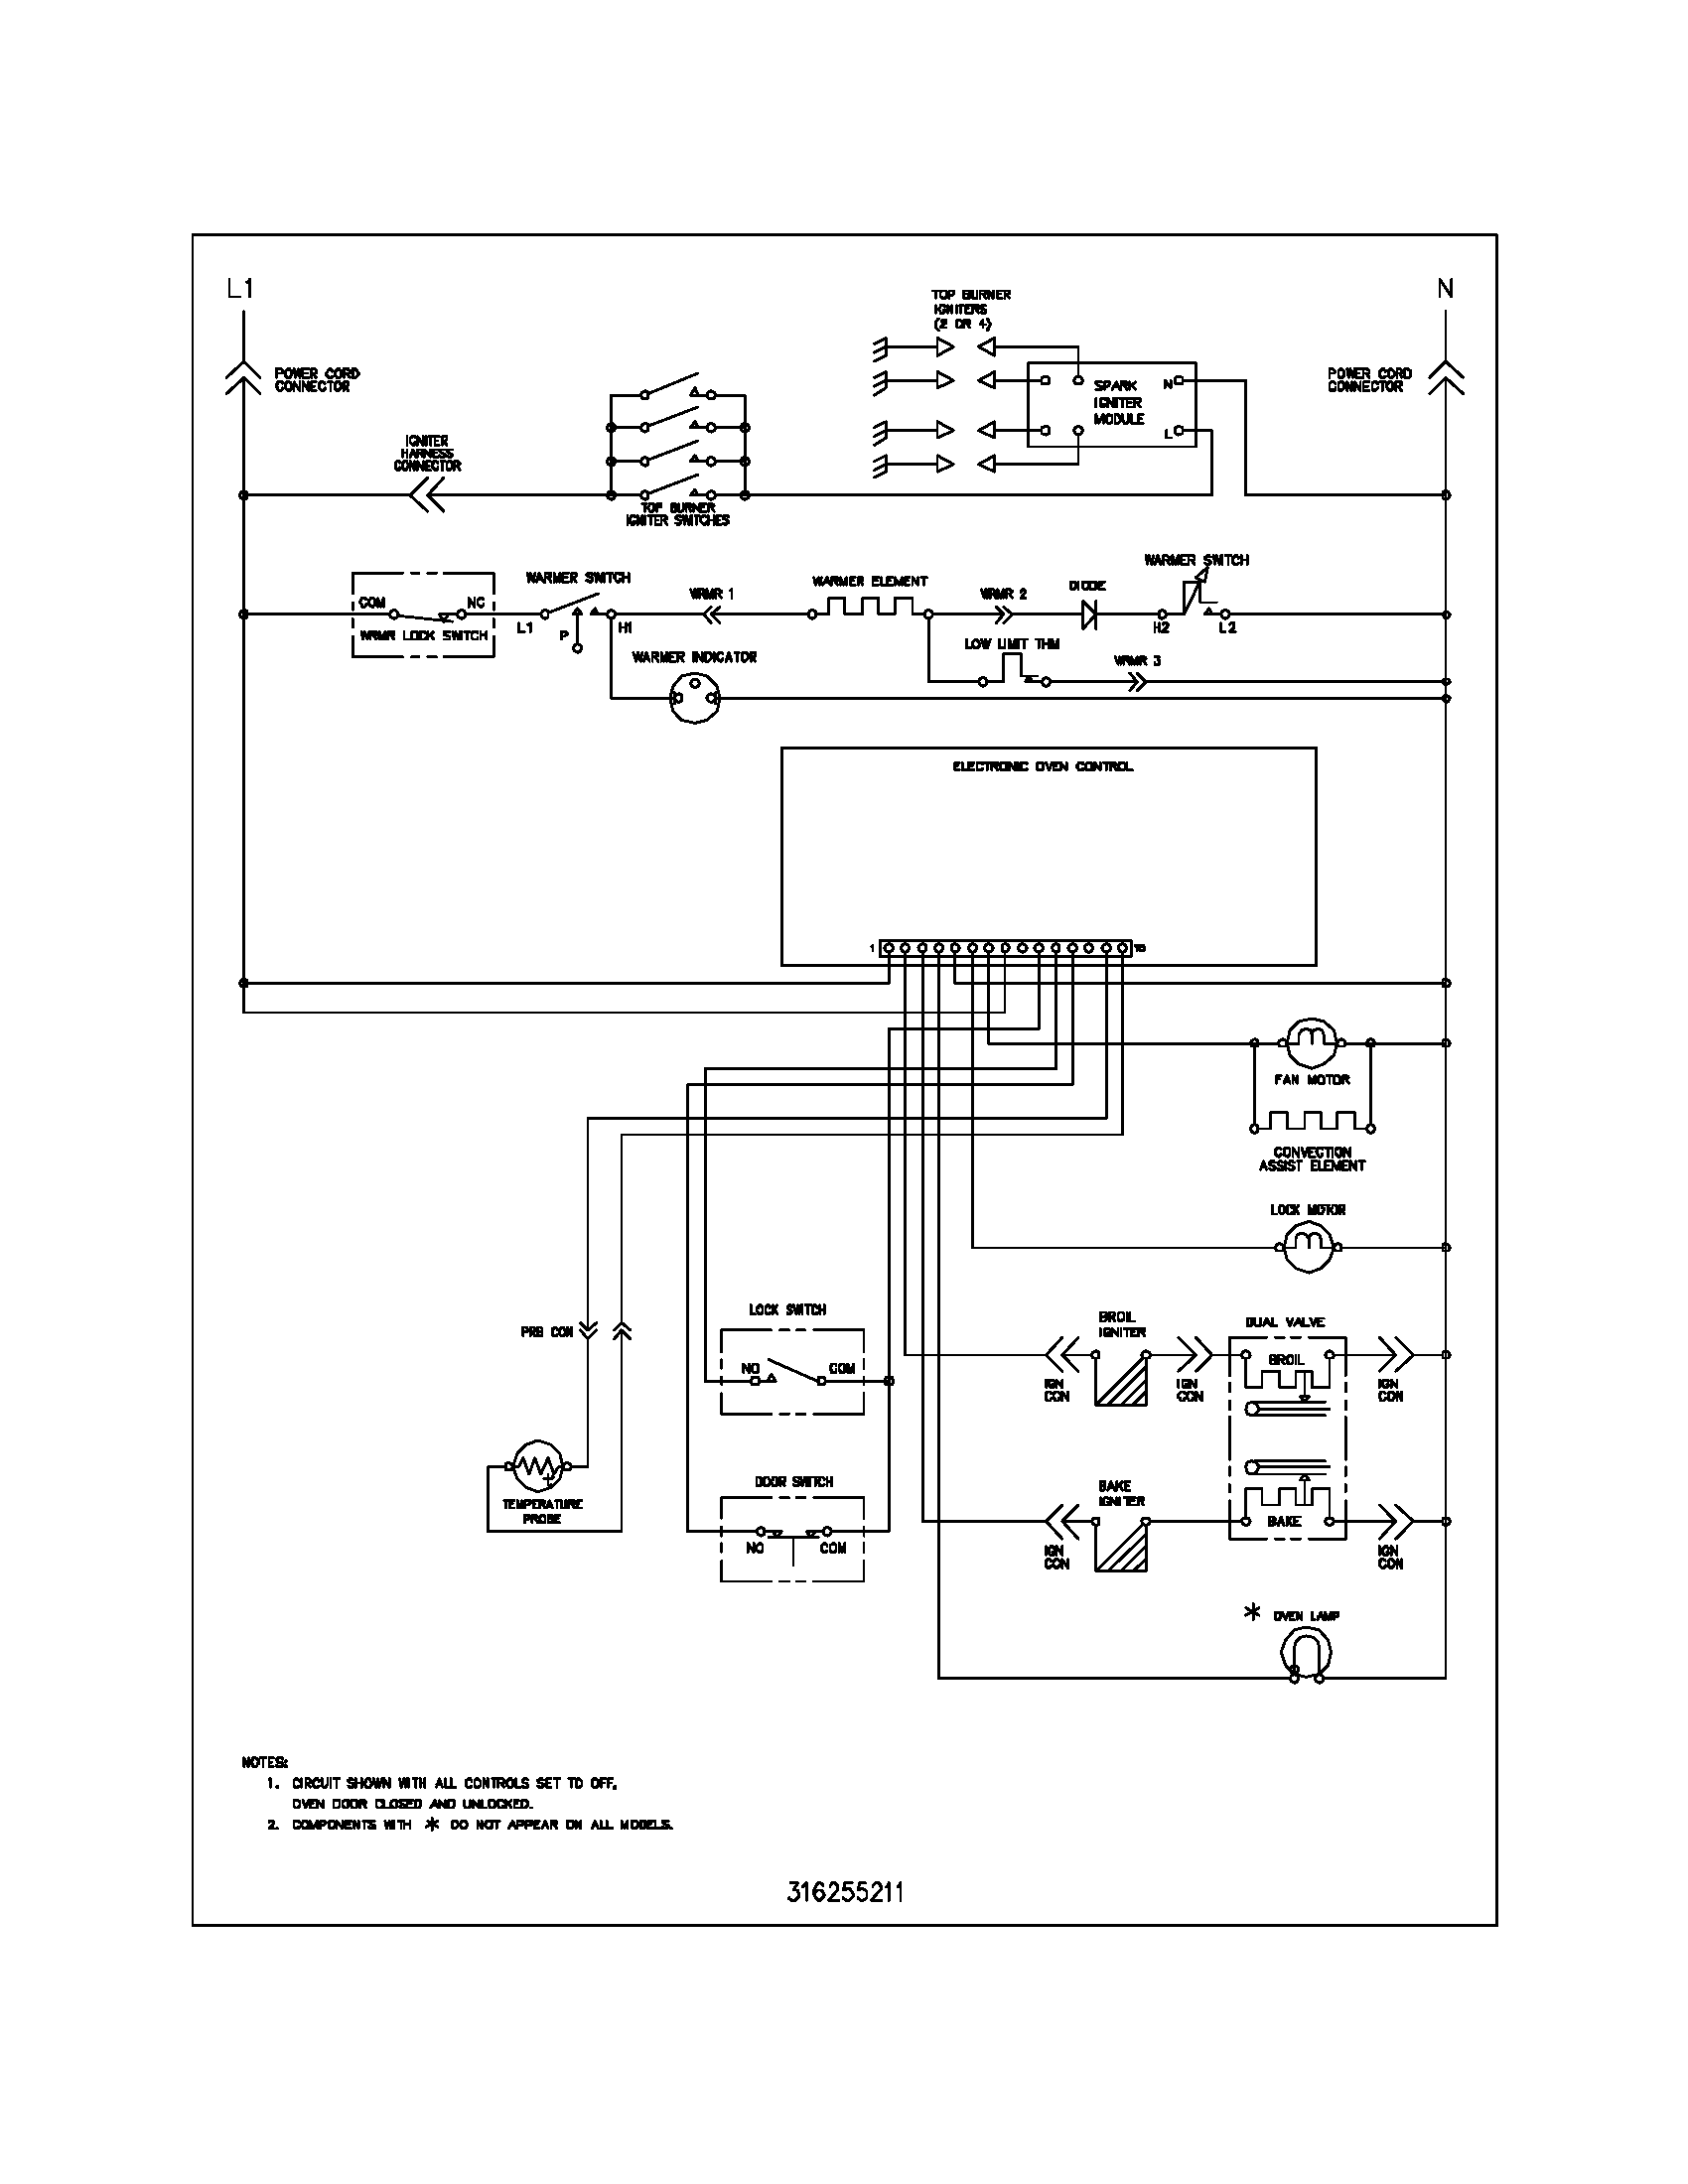 wiring schematic parts frigidaire plgf389ccc gas range timer stove clocks and appliance gas guard 2 wiring diagram at crackthecode.co